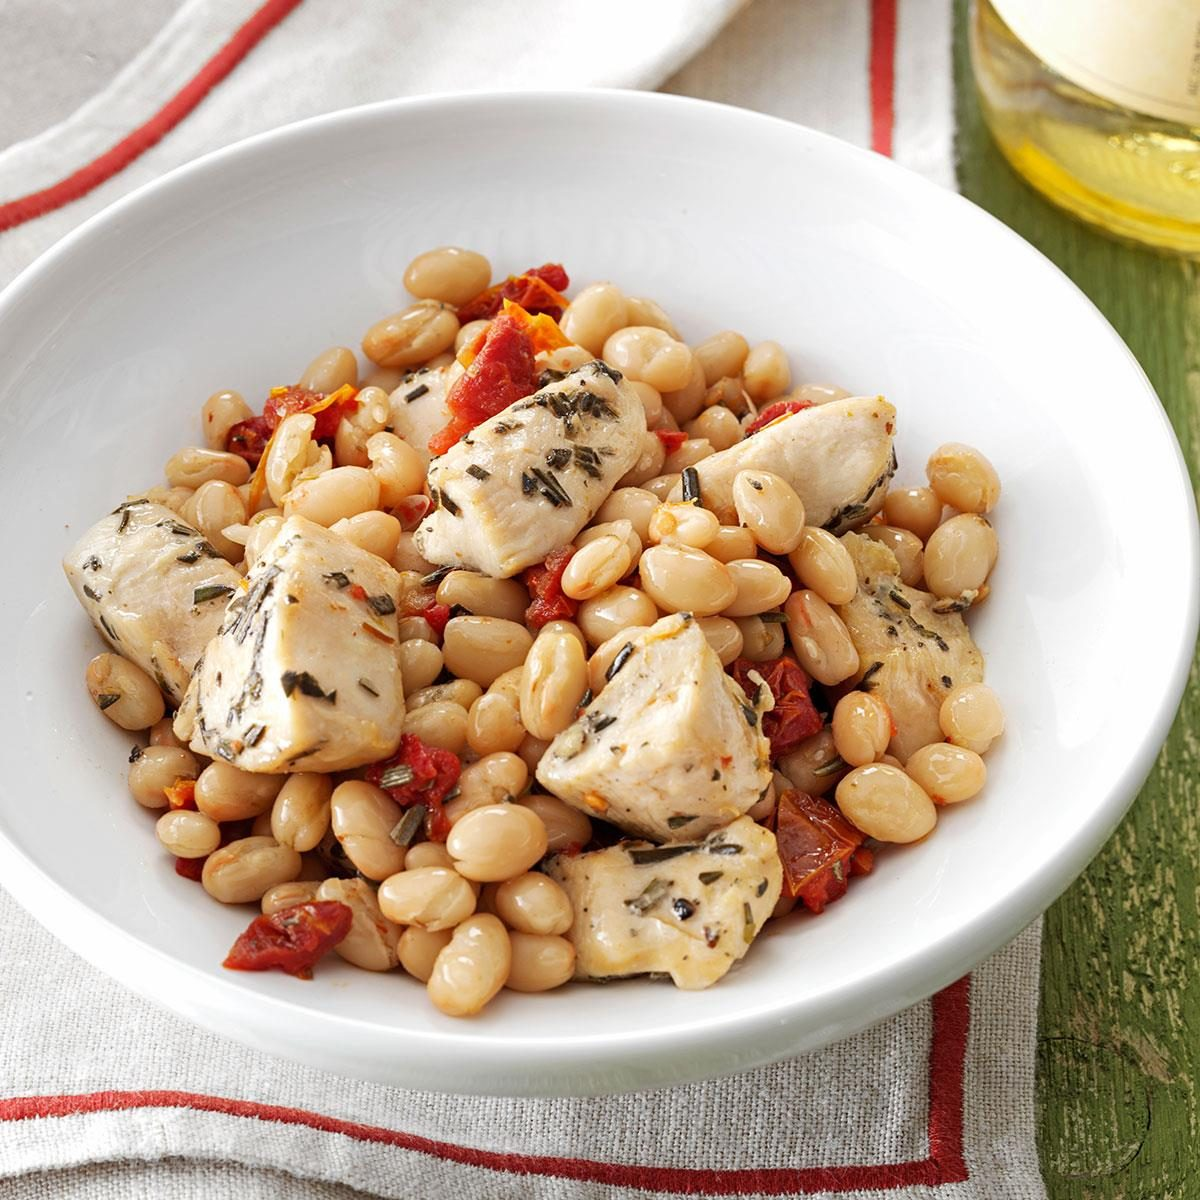 Day 30: Tuscan Chicken and Beans